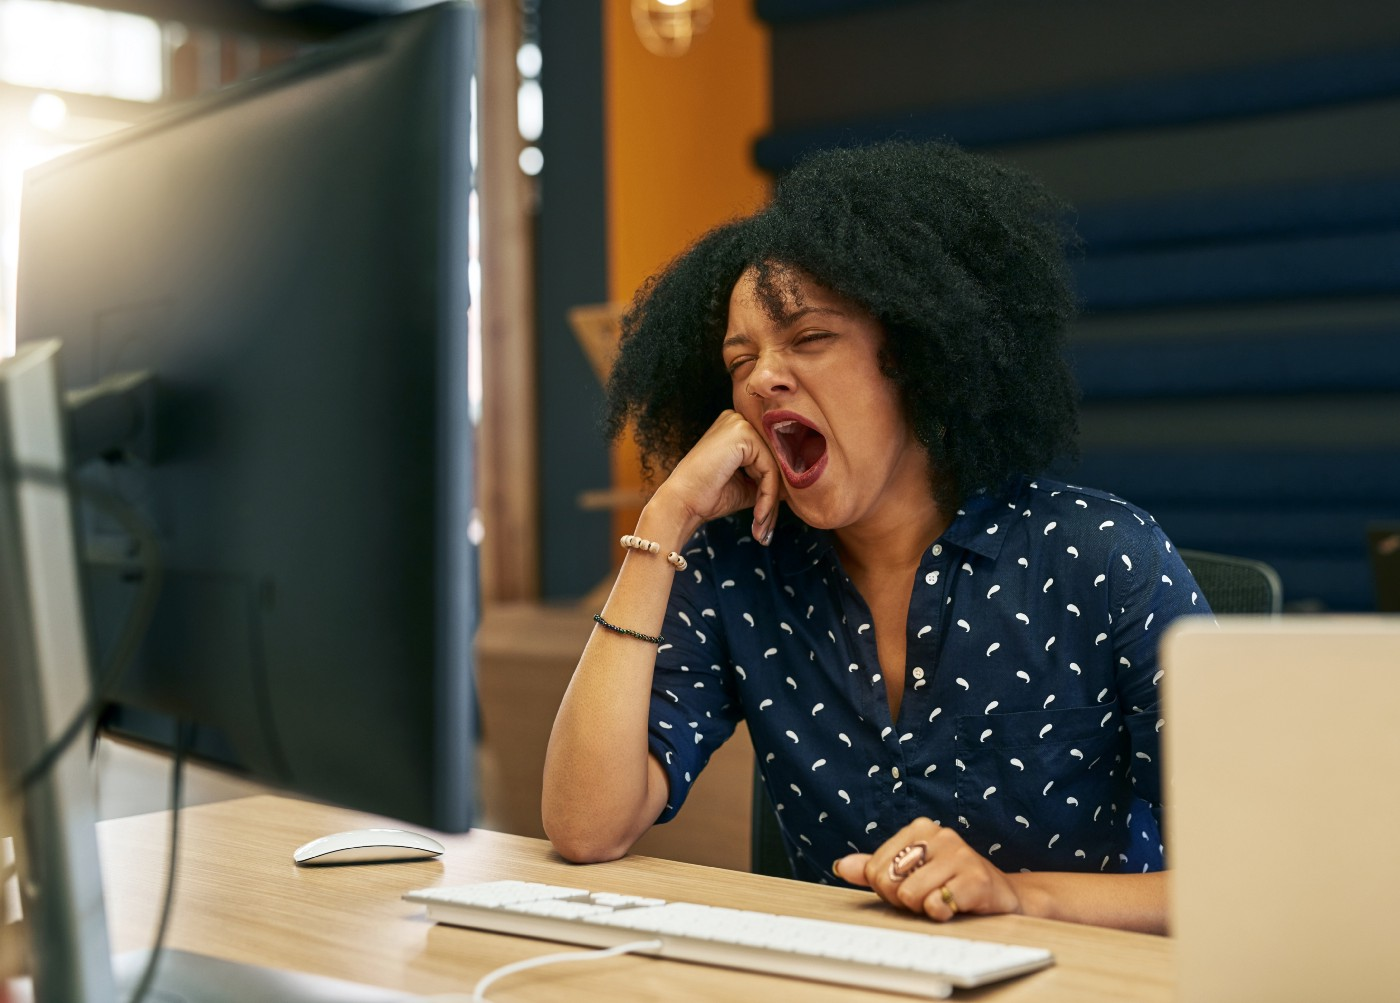 A young woman yawning at her desk while looking at her computer.